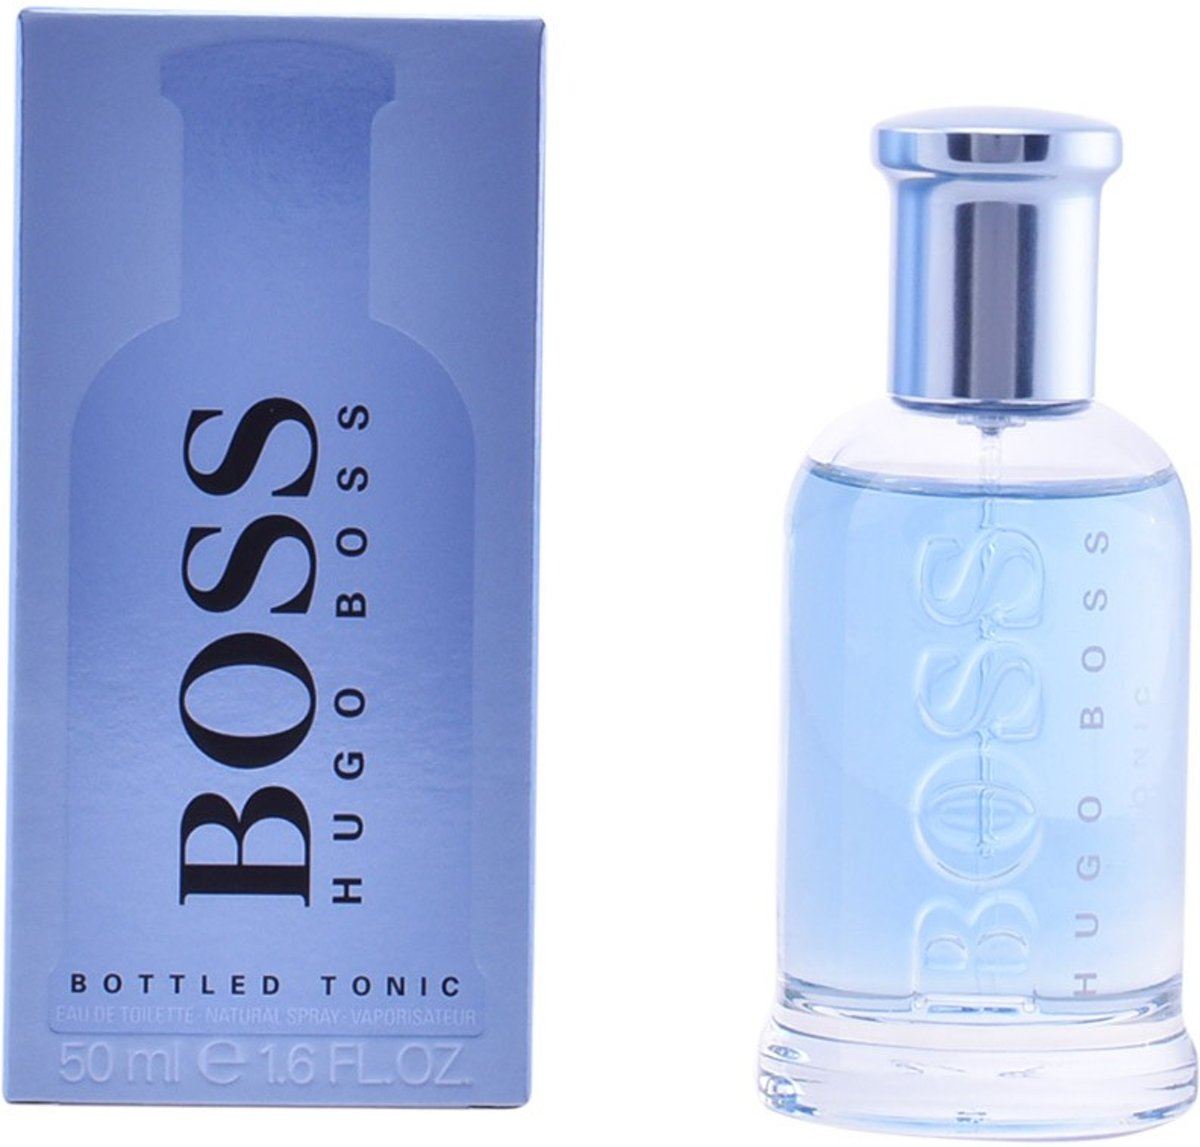 MULTI BUNDEL 2 stuks BOSS BOTTLED TONIC Eau de Toilette Spray 50 ml